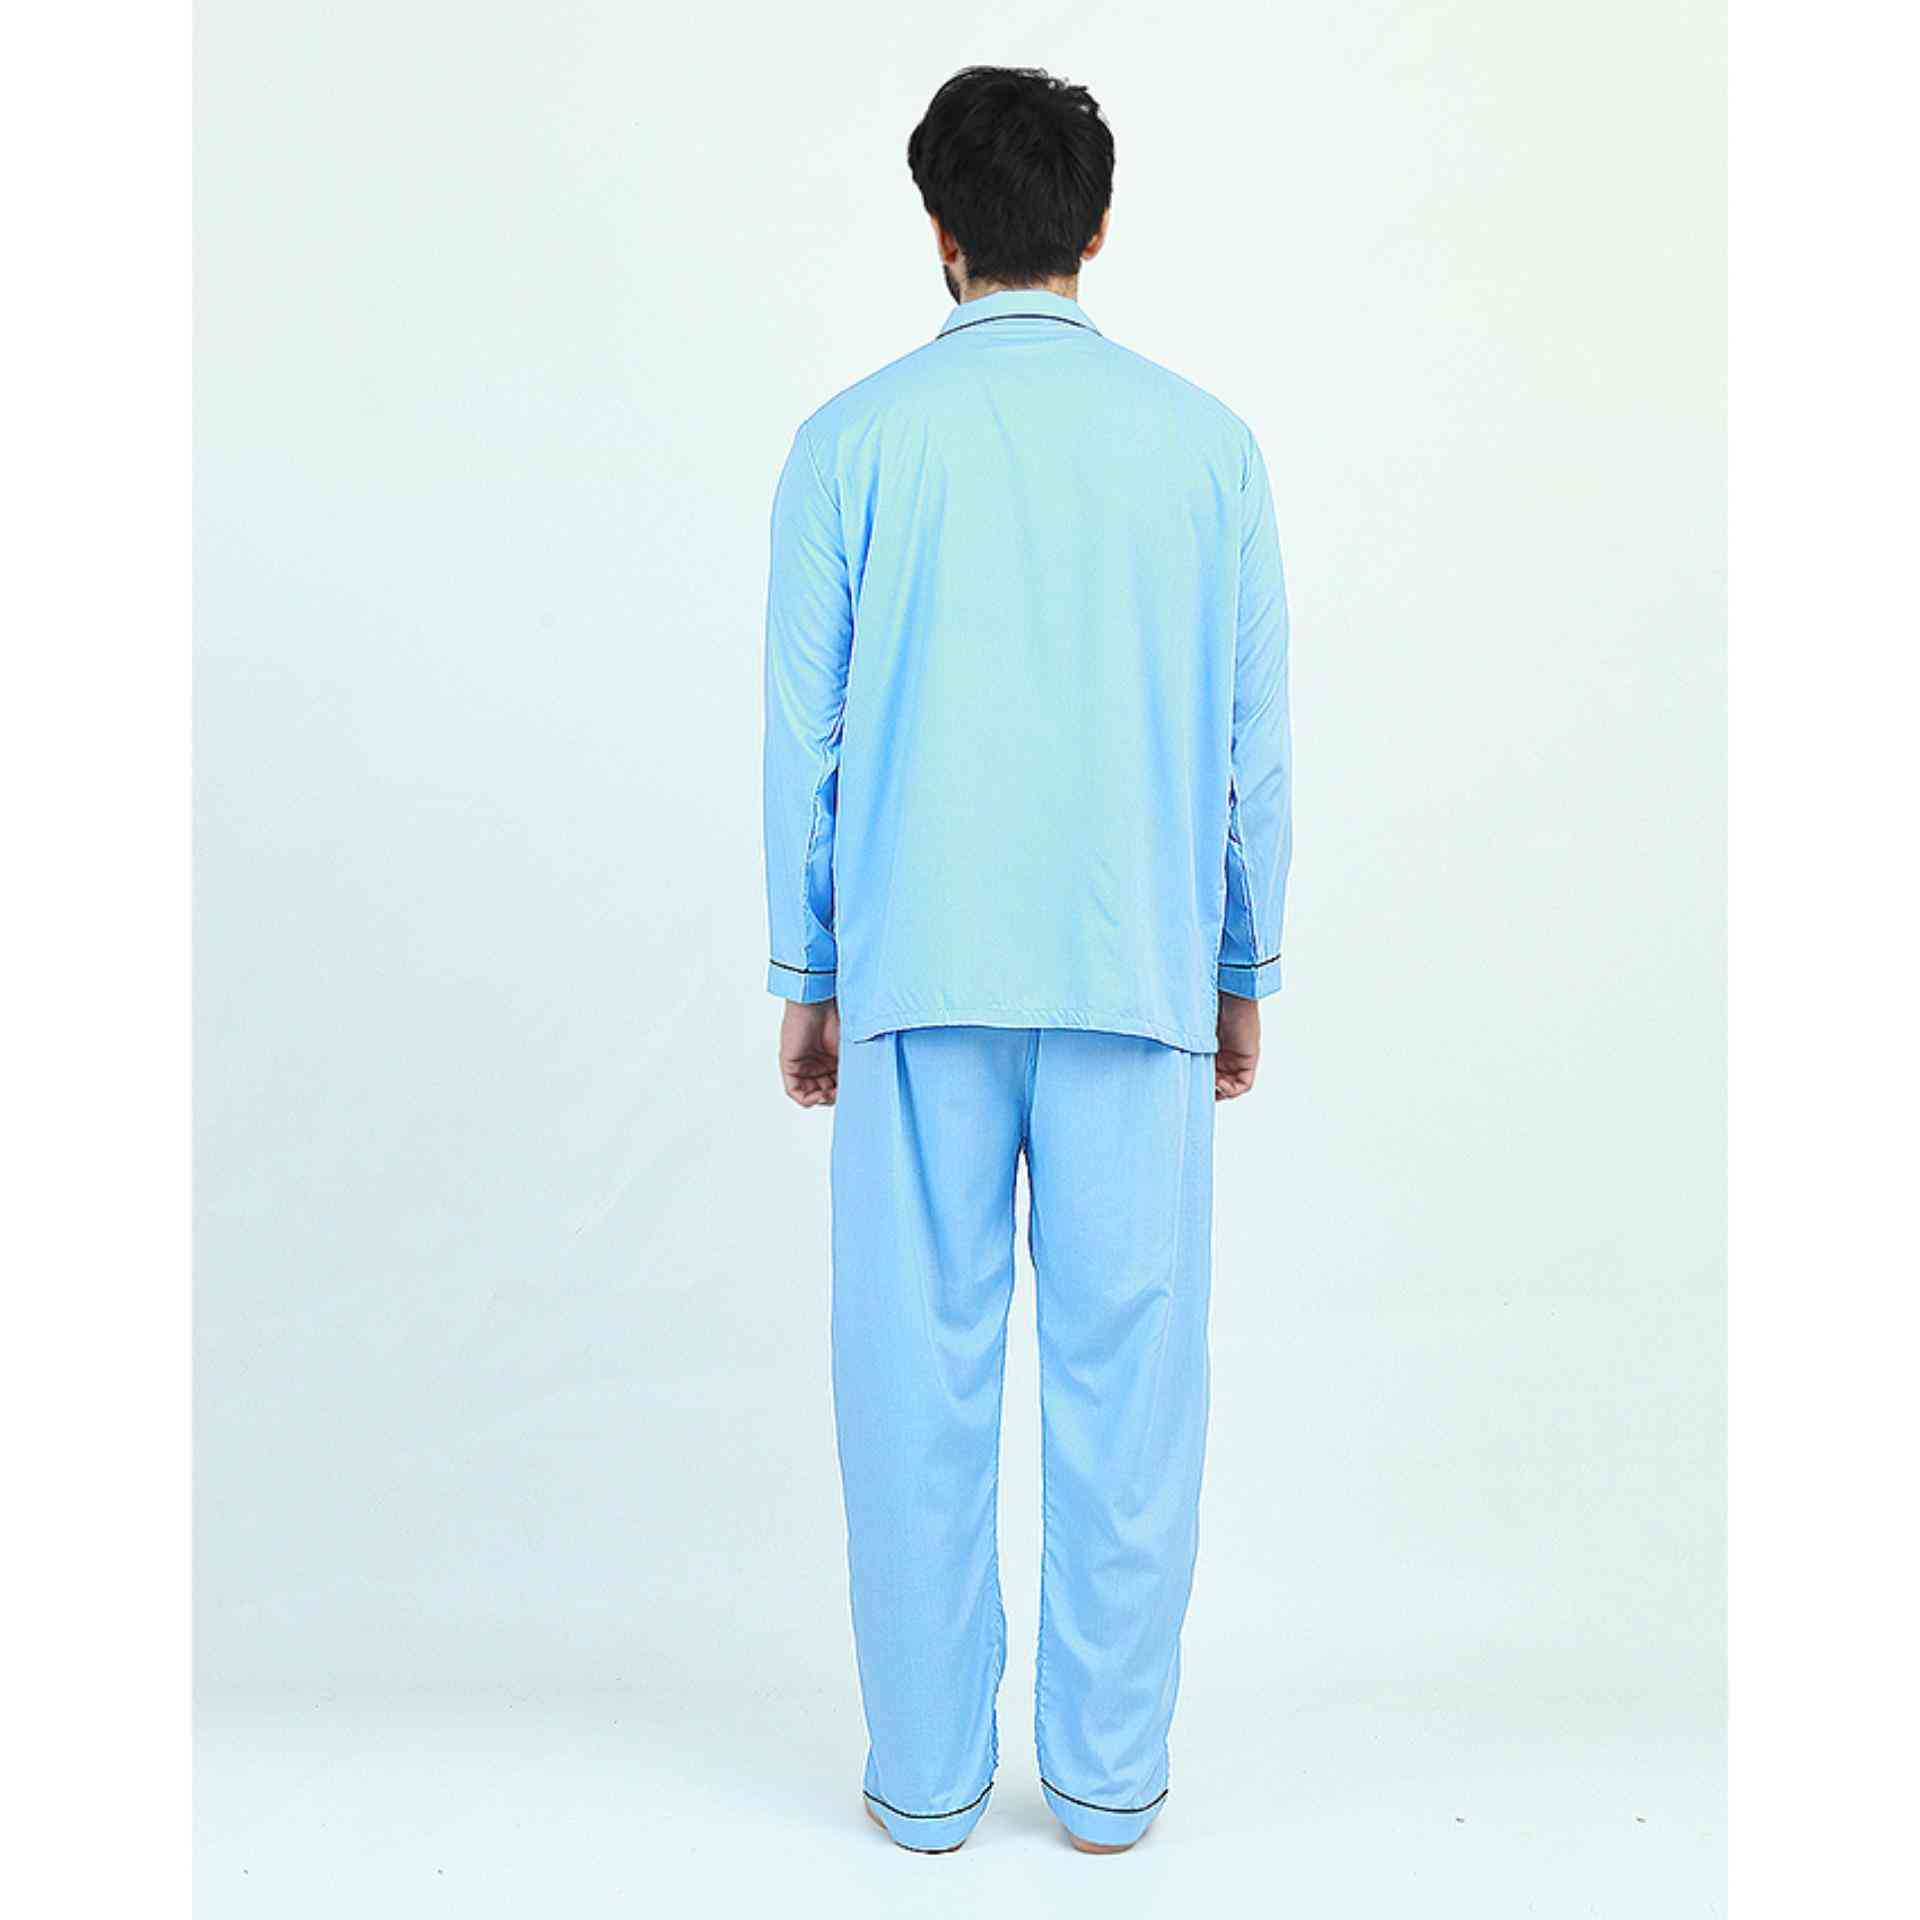 Pack of 2 Cotton Polyester Night Suit (Pajama + Shirt) for Men - Light Blue